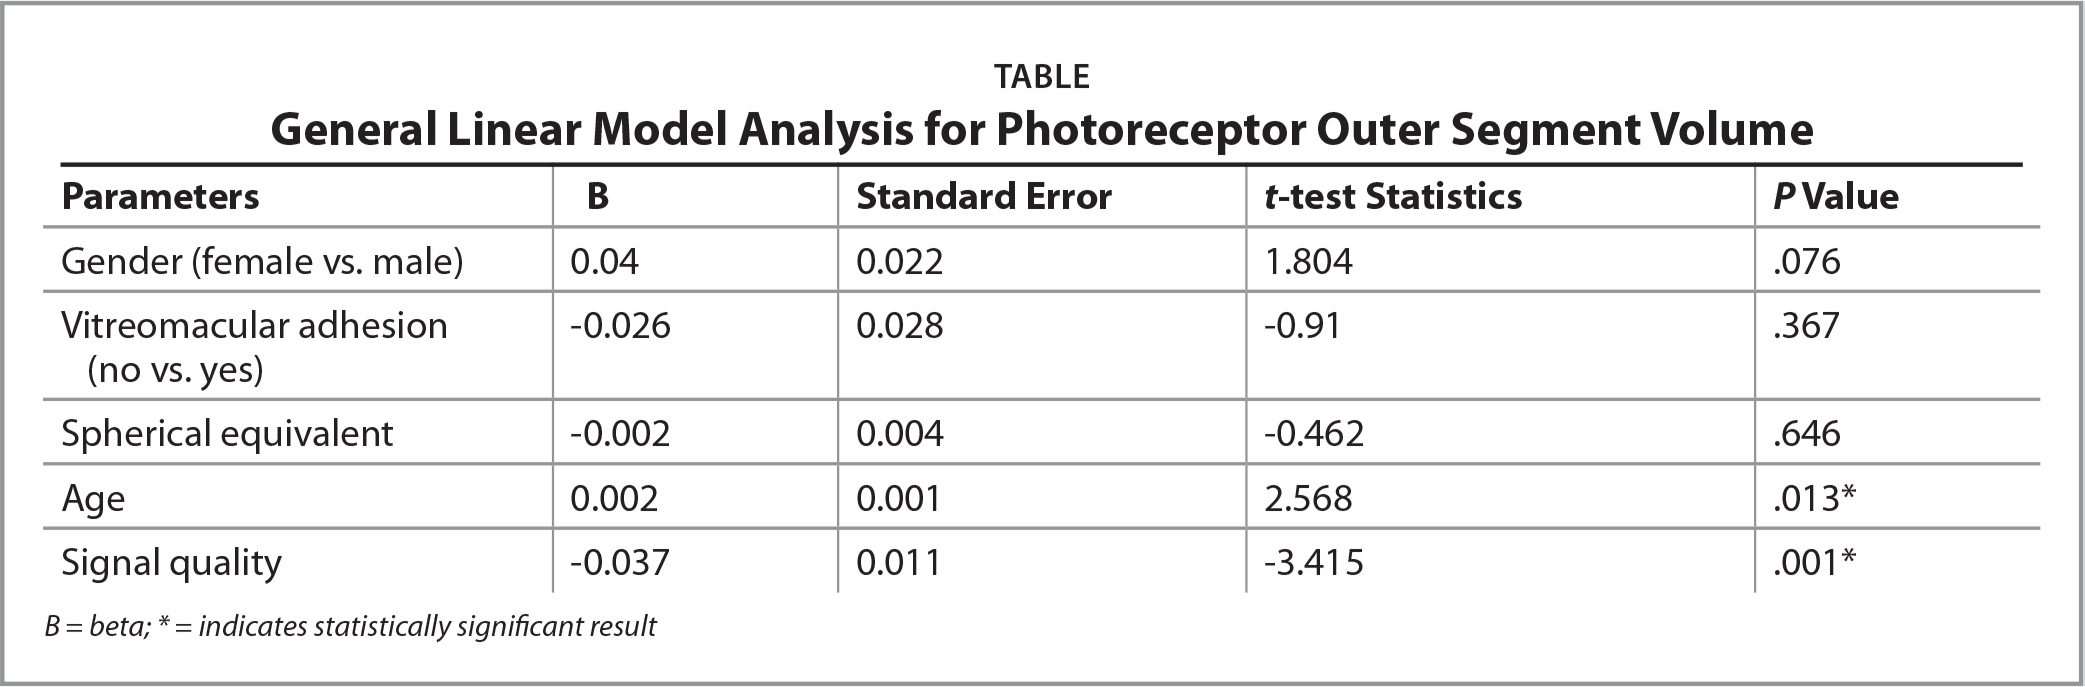 General Linear Model Analysis for Photoreceptor Outer Segment Volume